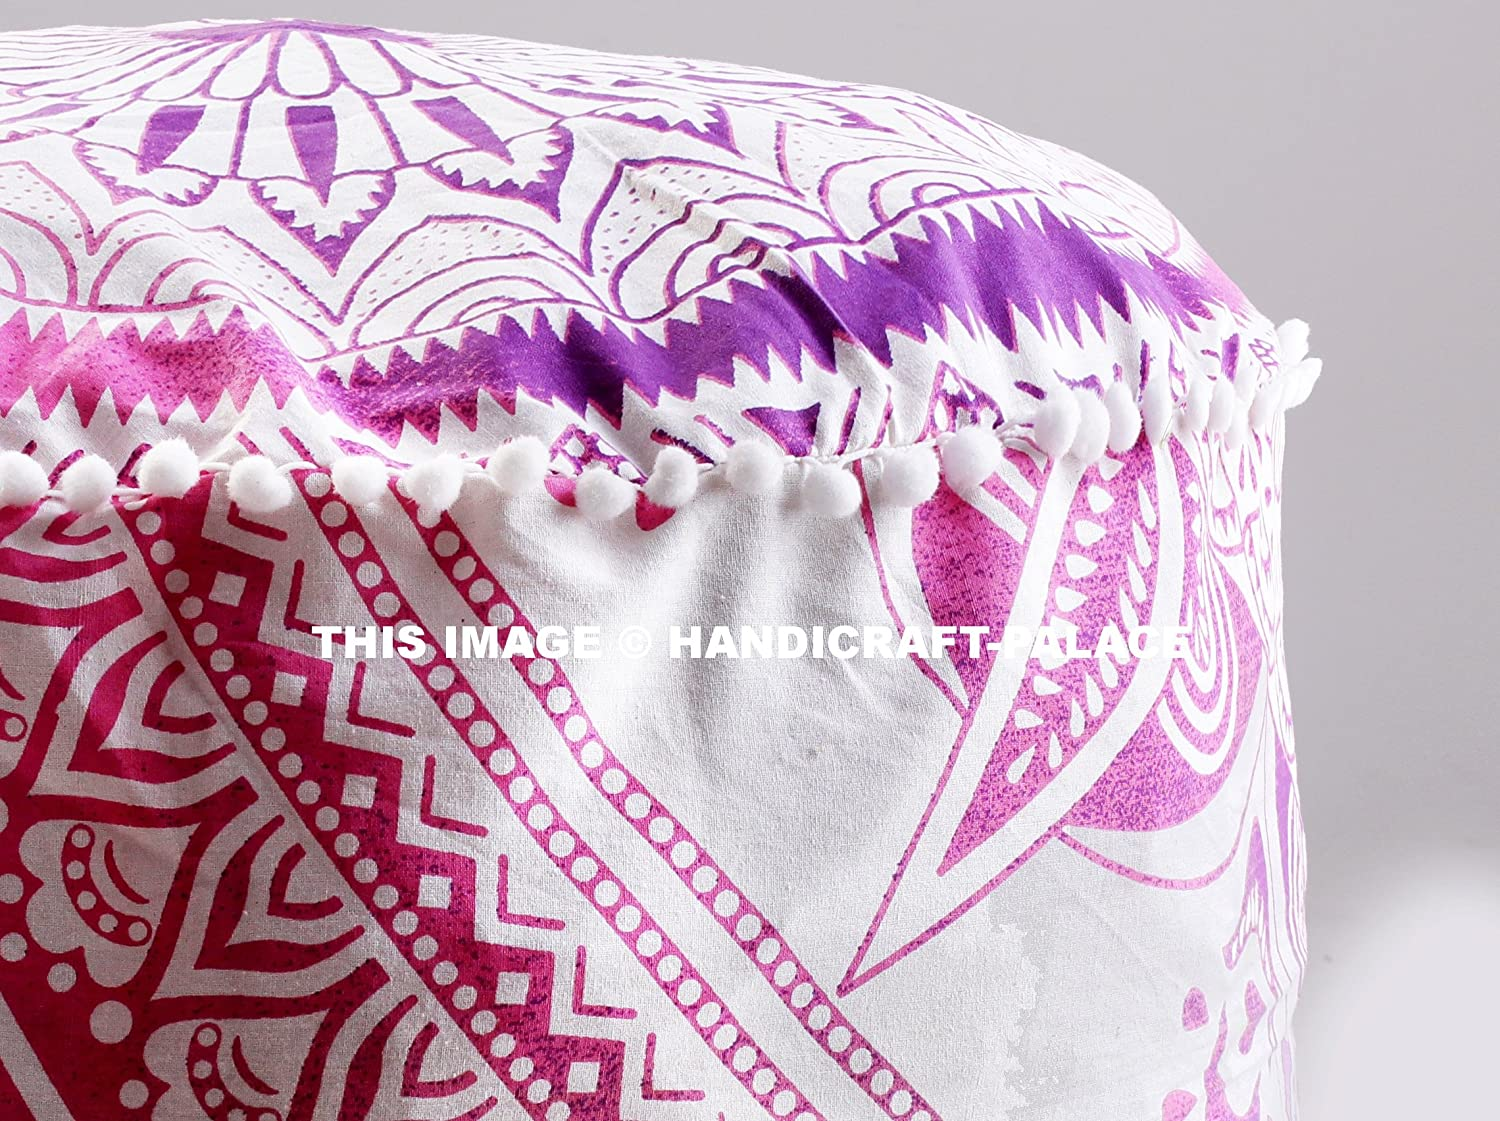 HANDICRAFT-PALACE Indian Cotton Ombre Mandala Round Floor Pouf Ottoman Cover Poufs Size 24 x 14 inches Sold